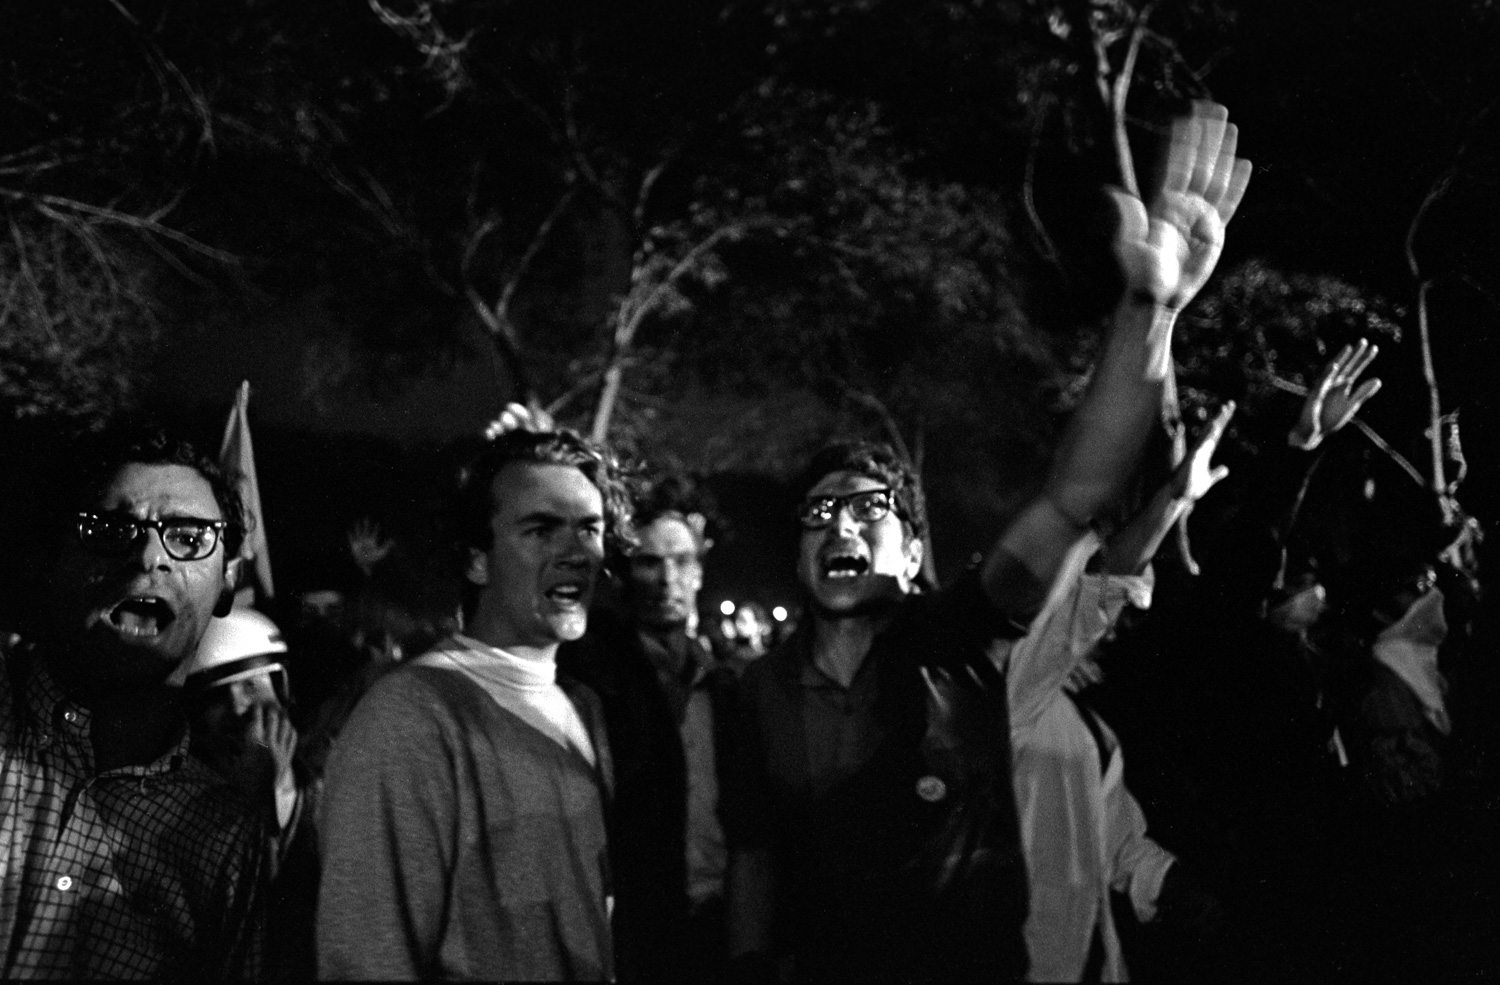 """Sieg, Heil!"" is what we chanted outside the Hilton Hotel on Michigan Avenue that night after Chicago police charged the crowd, pushing them through the hotel's plate glass window."